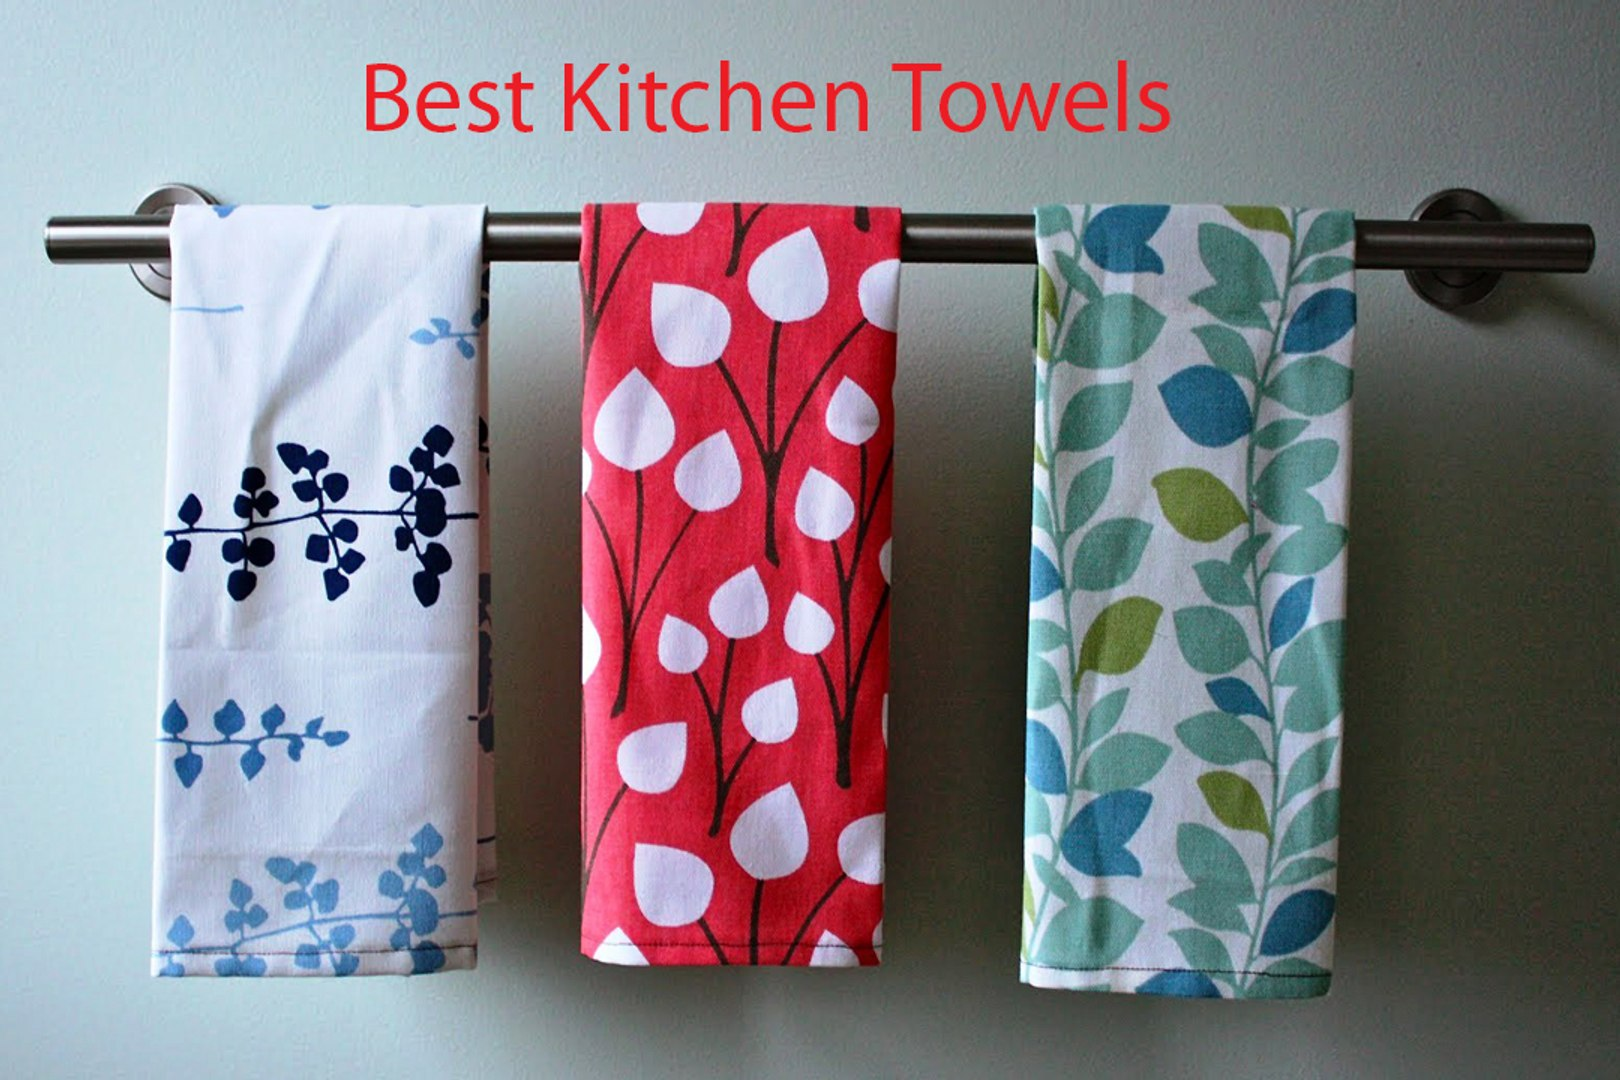 What Are The Best Kitchen Towels To Buy 5 Best Kitchen Towels